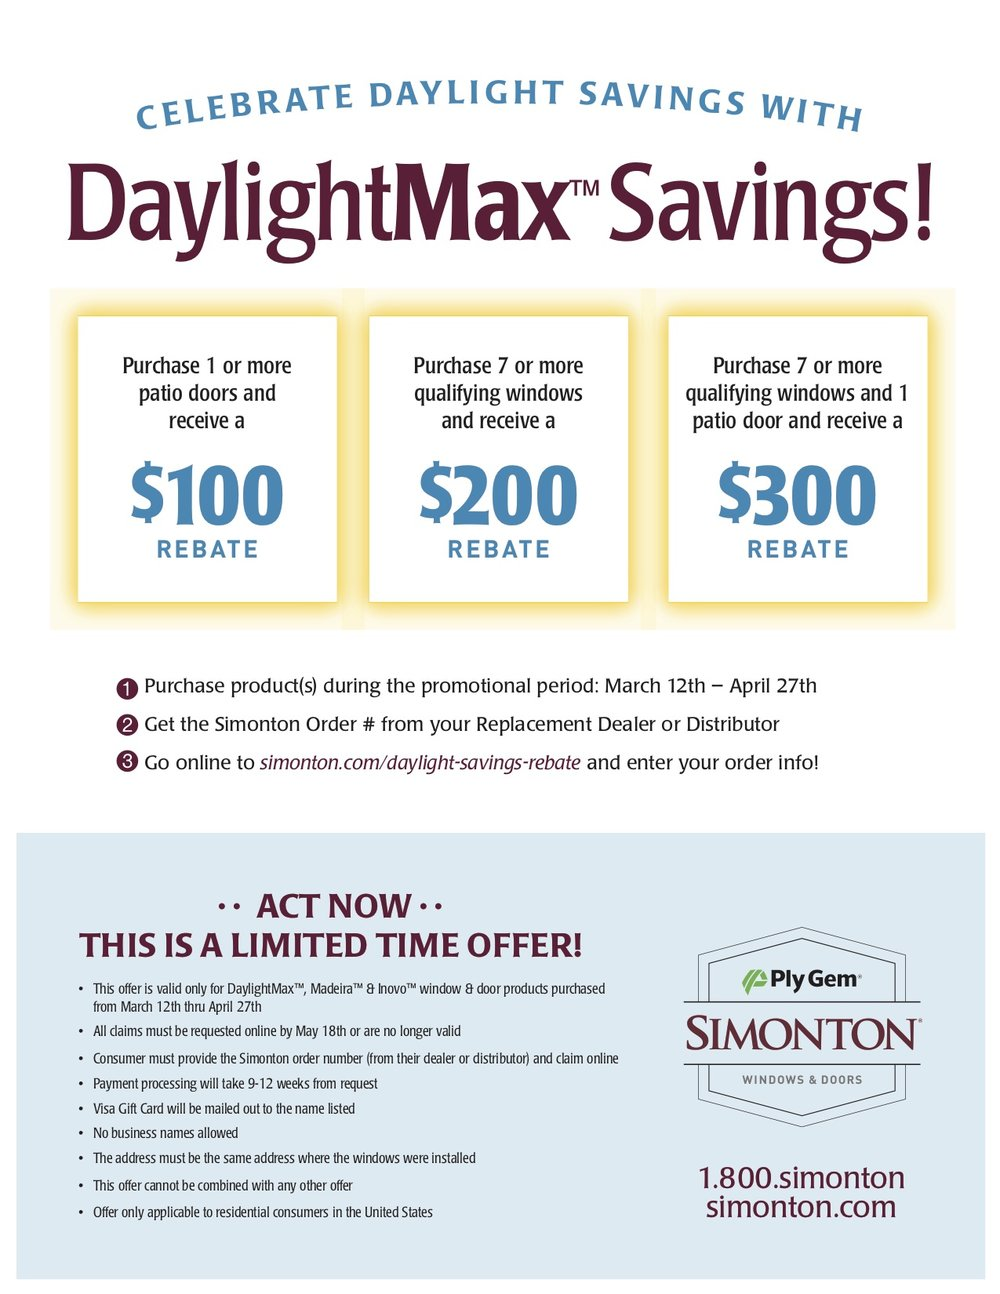 Spring 2018 DaylightMax Savings Flyer2.jpg